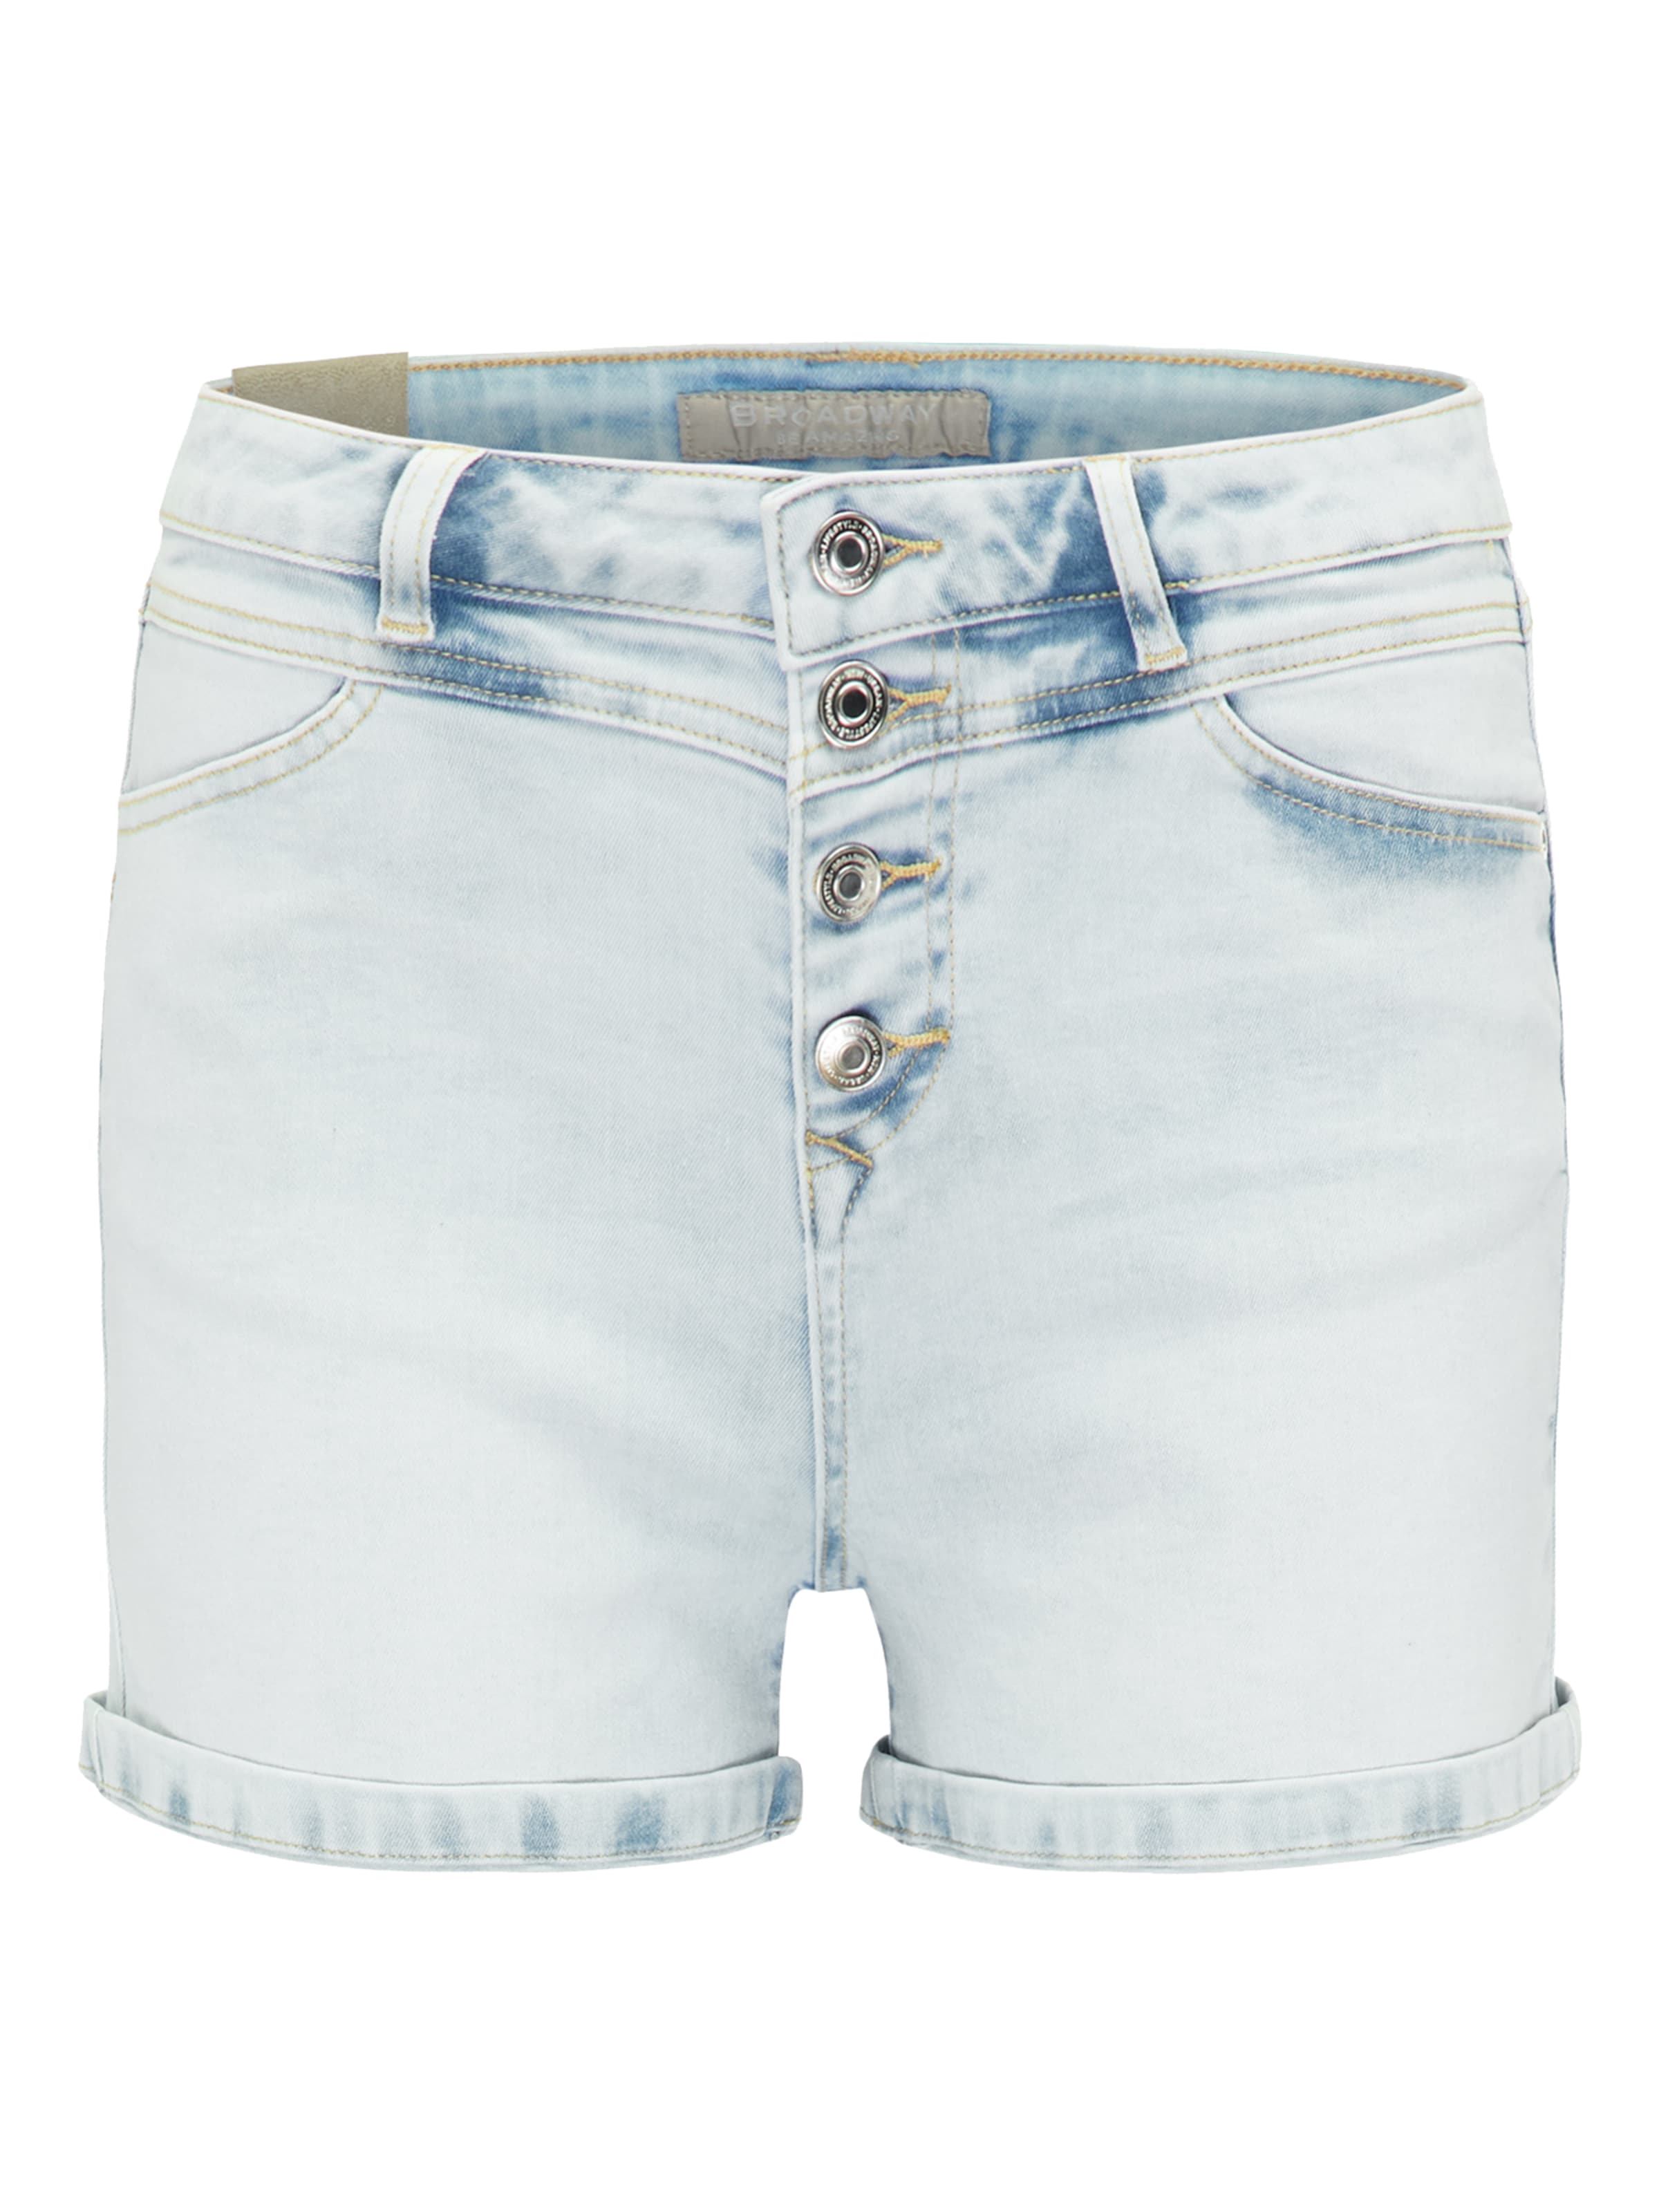 Denim Nyc Fashion Shorts In Blue Broadway uOXZPki